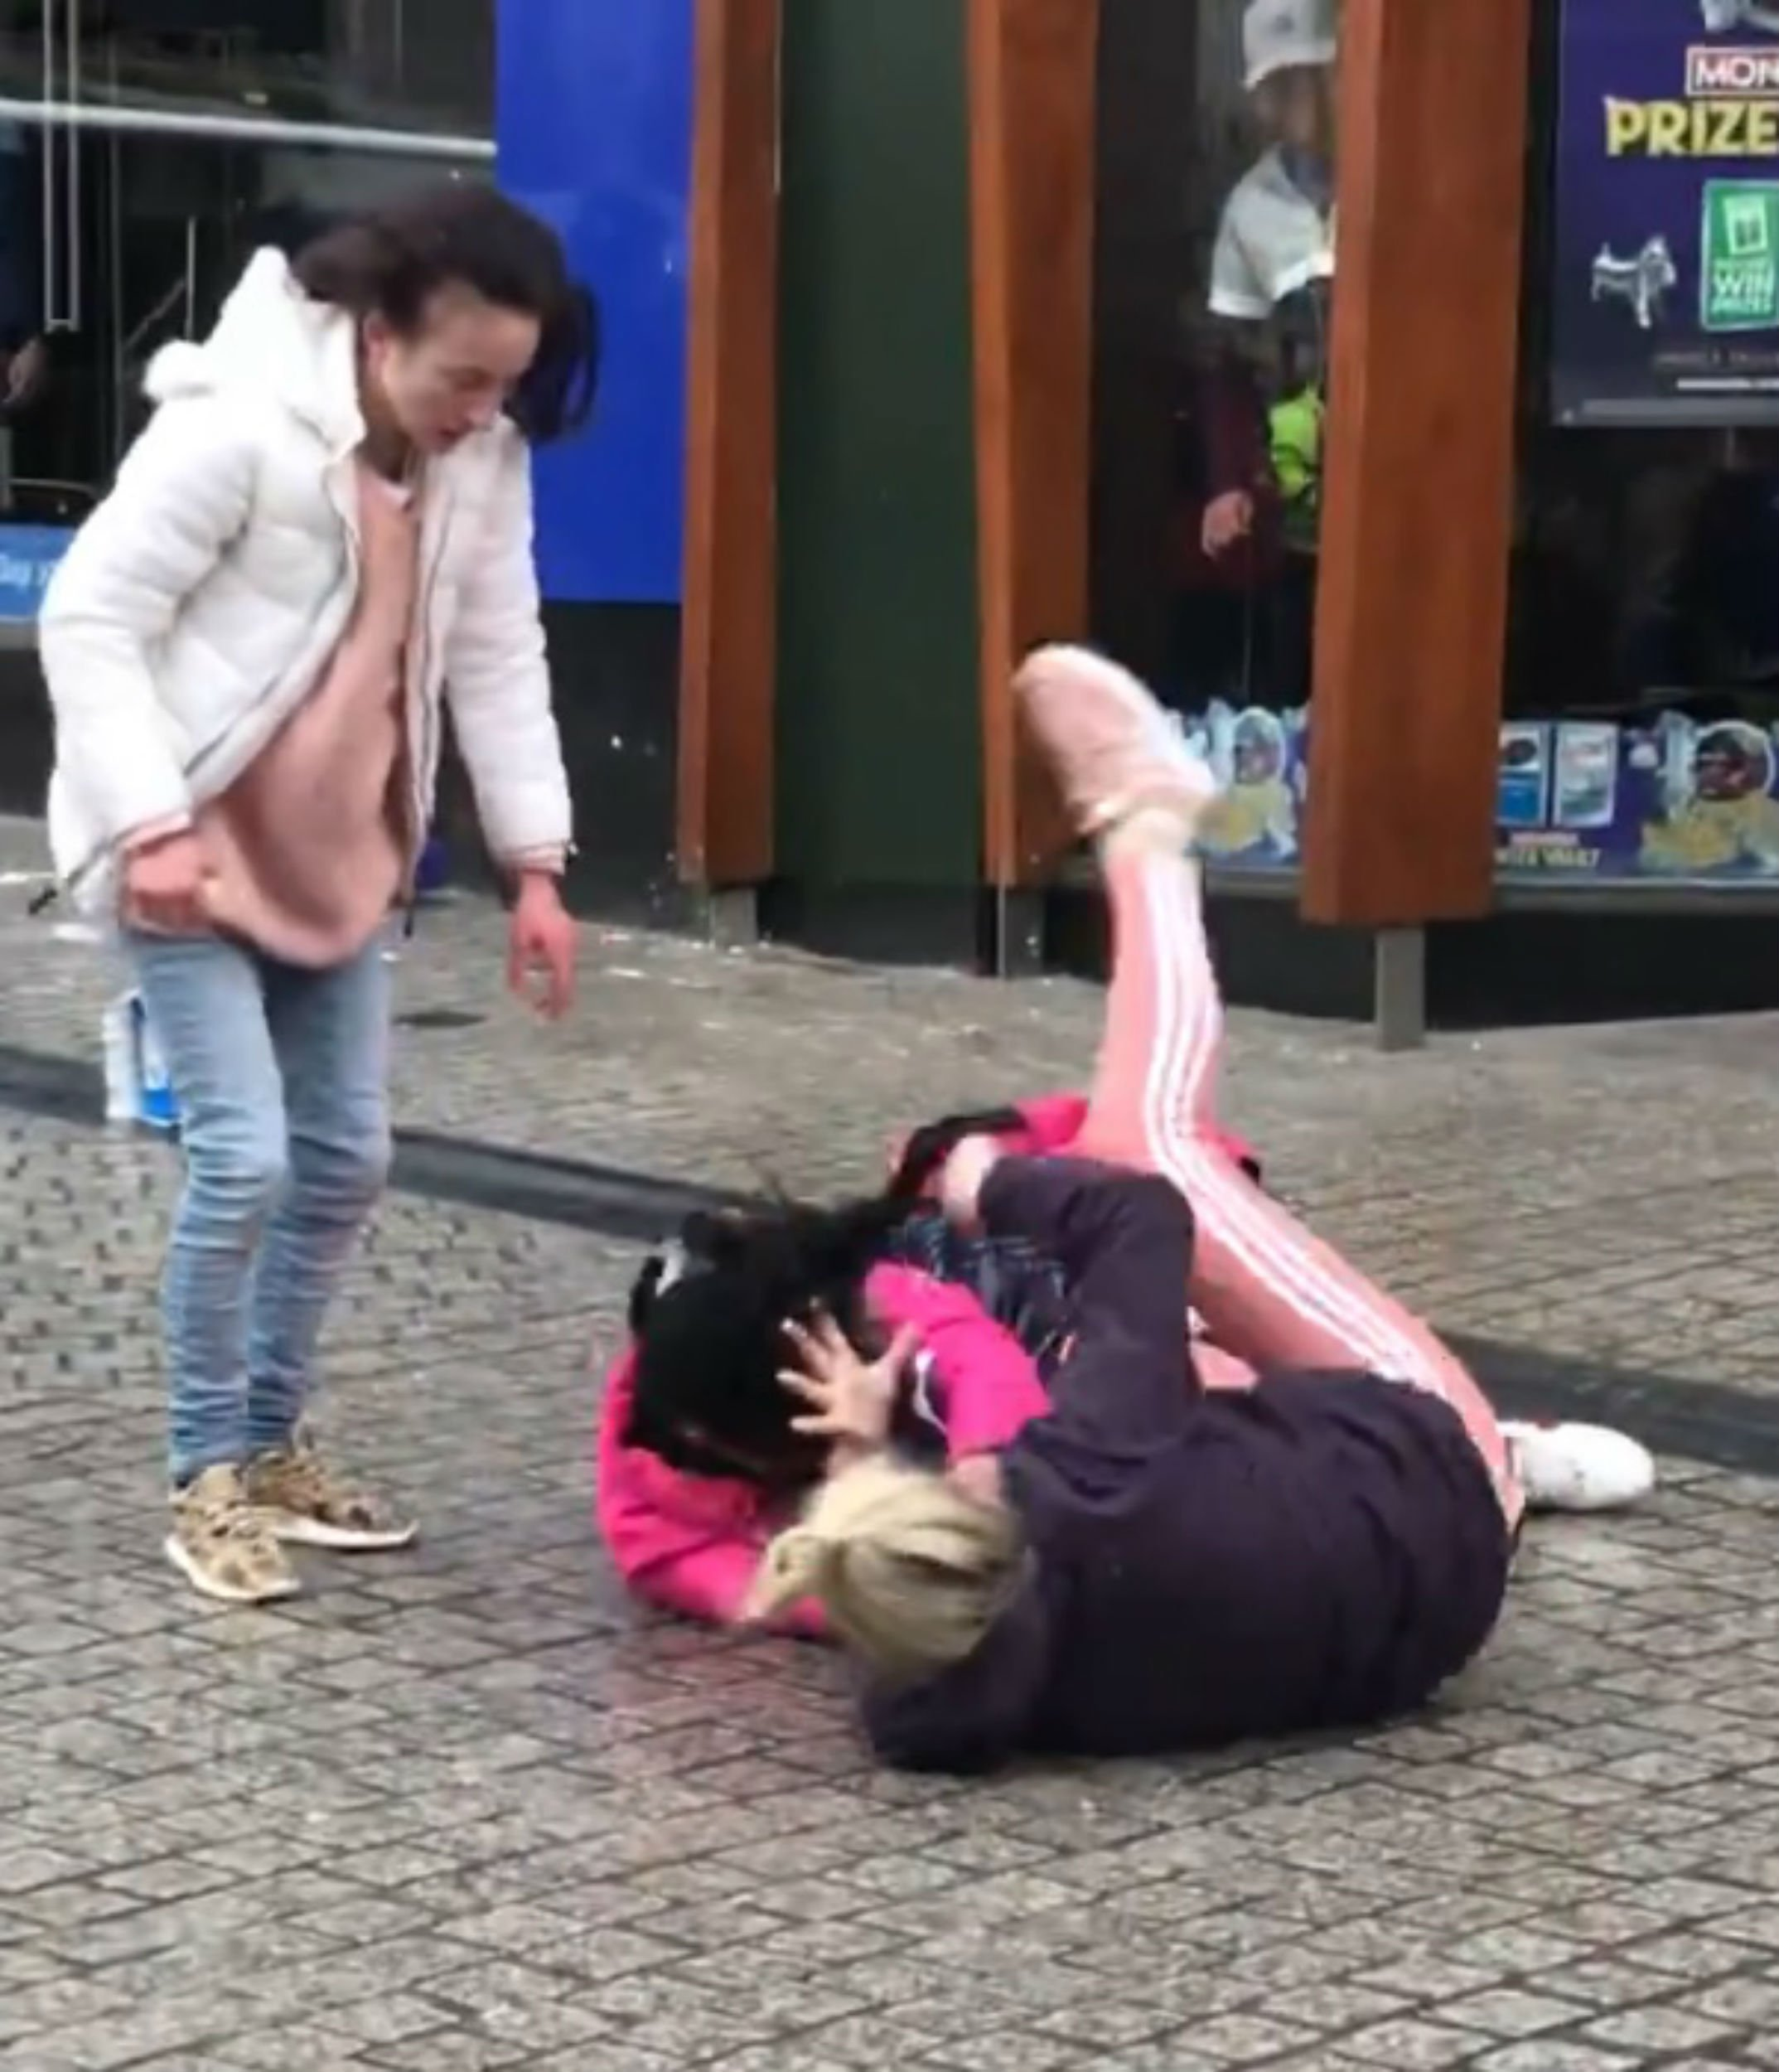 A SICKENING video shows two women in a savage street brawl ourtside a McDonald's - watched by a crowd of 100 shoppers. One of the women leaps at her victim, grabbing her hair and viciously pulling her to the ground before launching into a series of brutal kicks and punches to her head. The pair scrapped for several minutes before any of the onlookers intervened and police said they appeared to have received no reports about the incident. Just three months ago, another group of women were filmed fighting outside the same McDonald's in Waterford, Ireland. Robbie Coleman shared footage of the disturbing fight on Facebook with the caption: ?It is ridiculous what goes on around this country.? The video, which has now been viewed over 237,000 times, begins with three women arguing in the centre of Waterford.